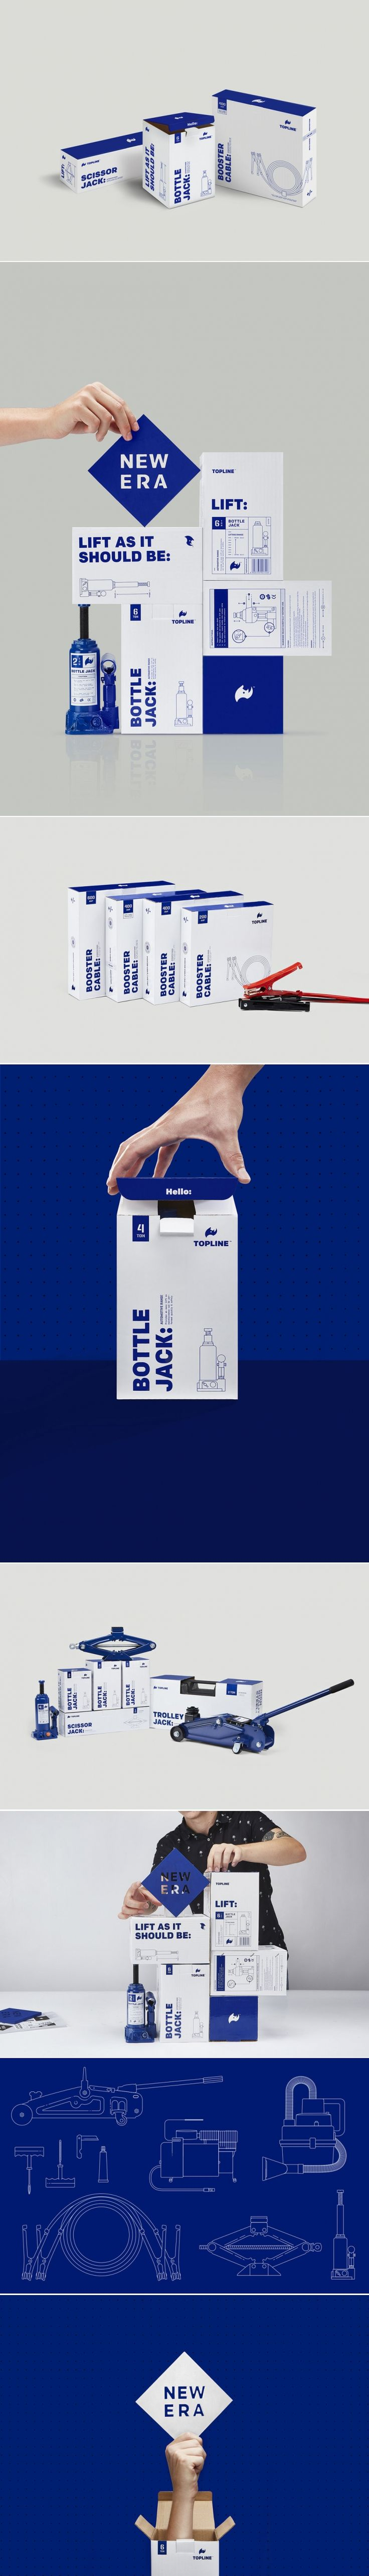 These Tools Come With a Striking Look That is Sure To Appeal To Consumers — The Dieline | Packaging & Branding Design & Innovation News